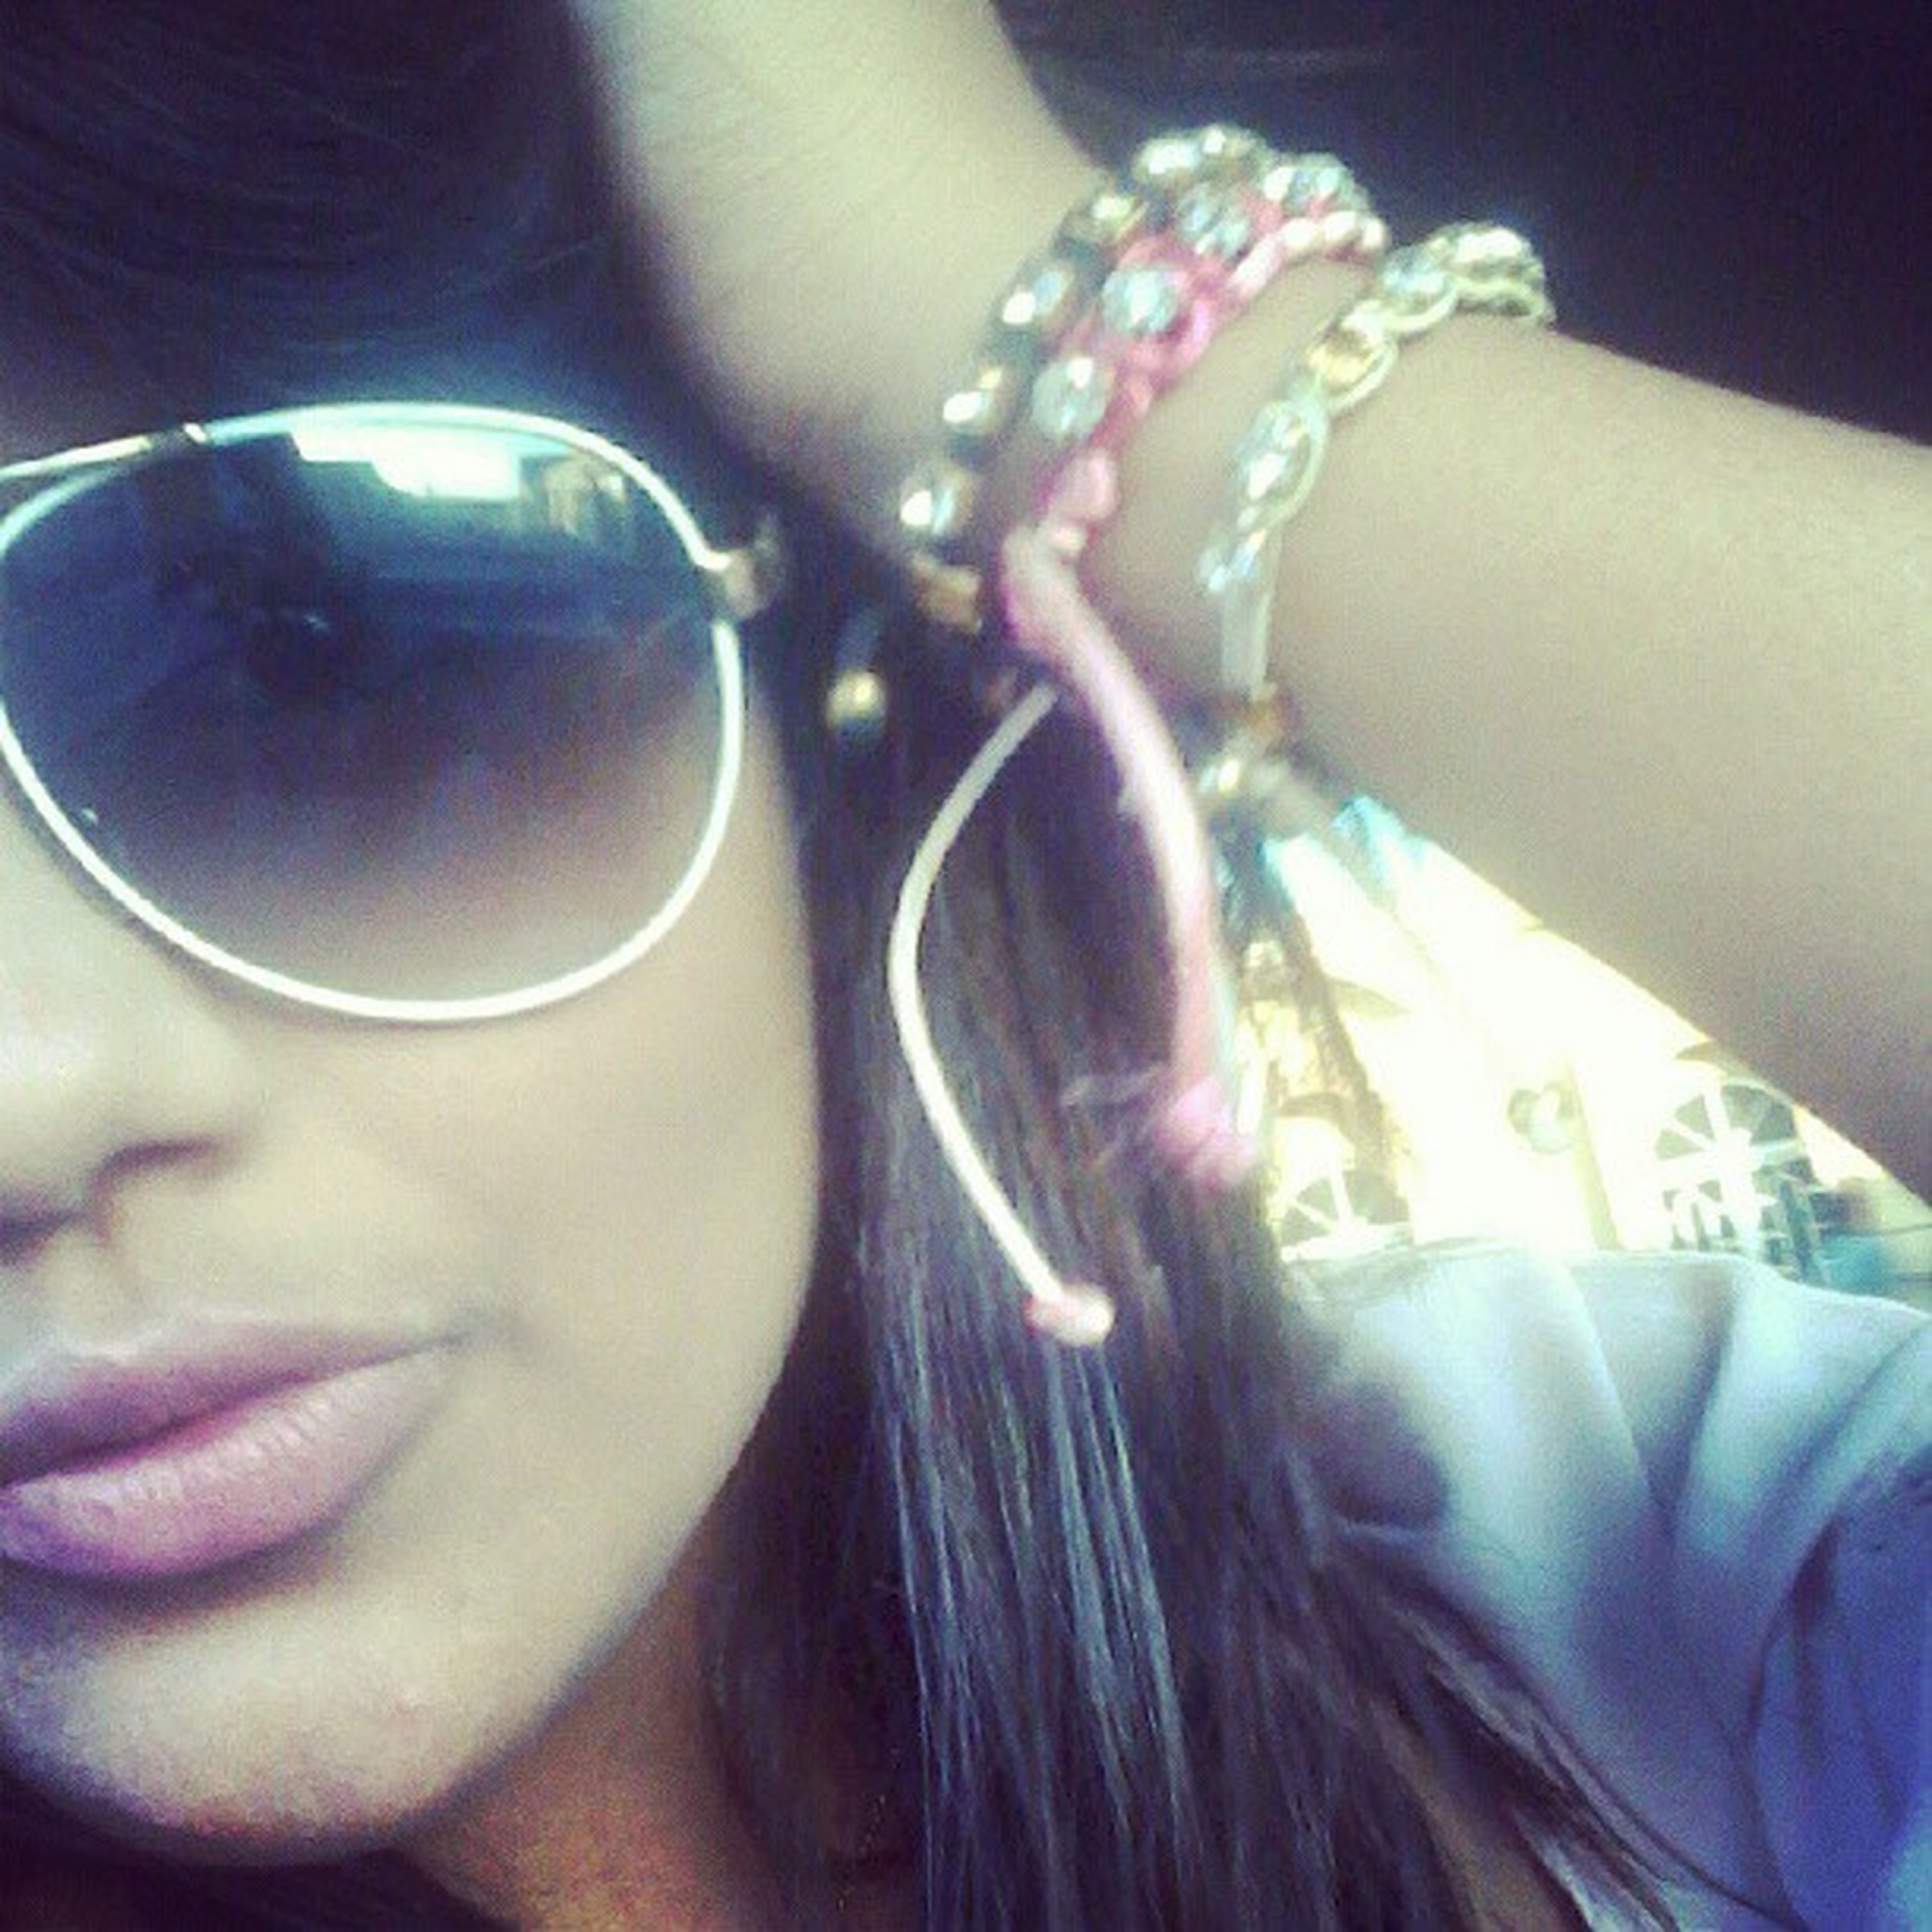 lifestyles, leisure activity, person, headshot, close-up, holding, part of, childhood, indoors, girls, cropped, sunglasses, elementary age, focus on foreground, human face